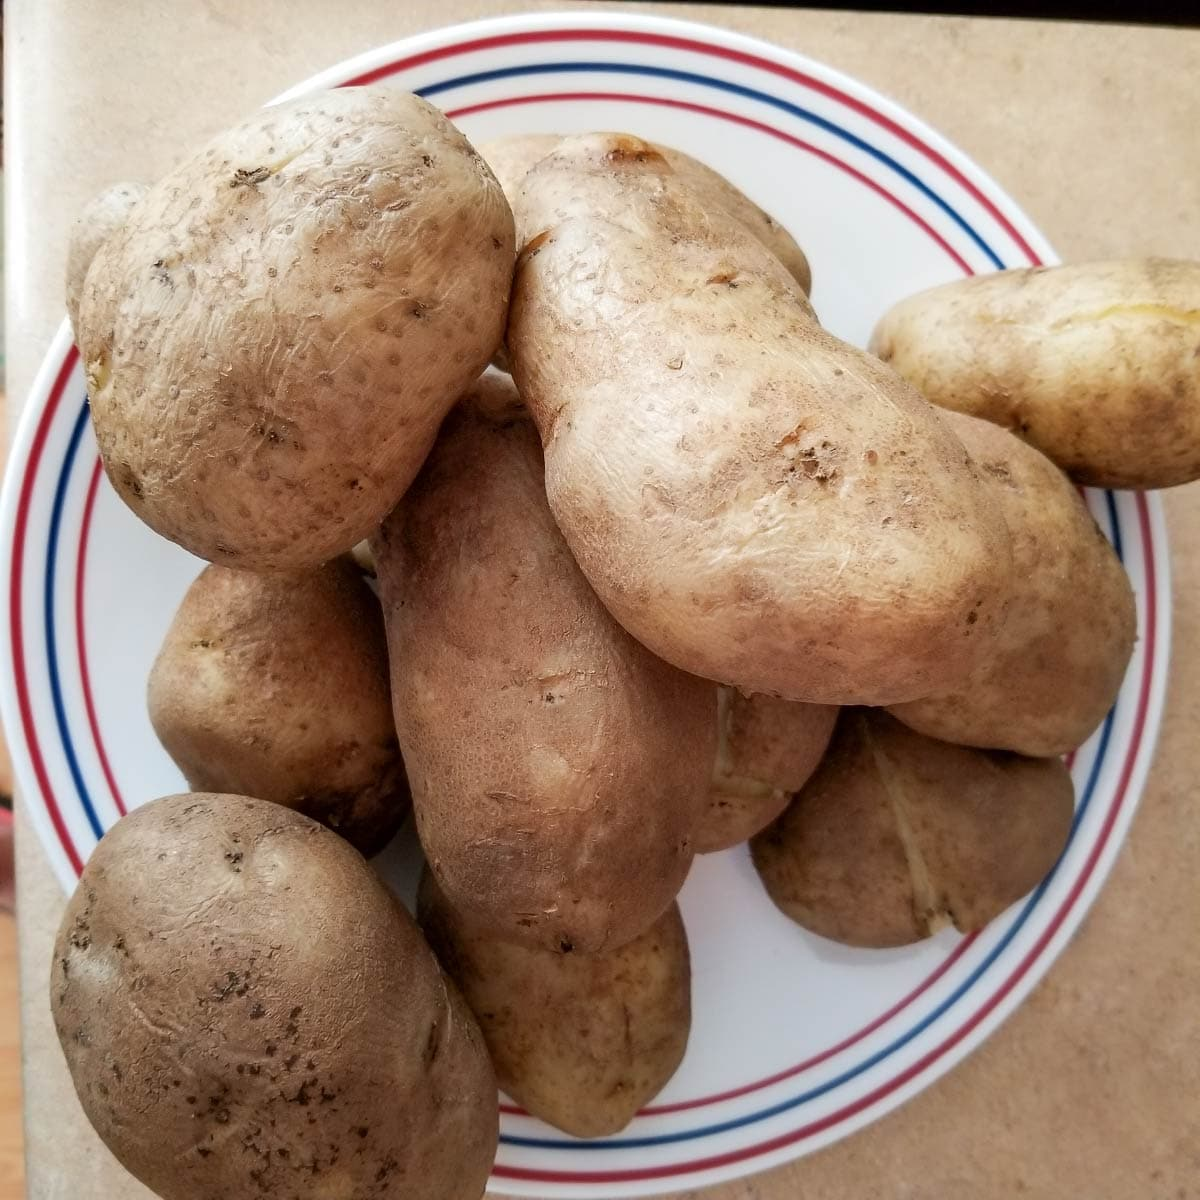 Whole russet potatoes on a plate after being cooked with the skins on.